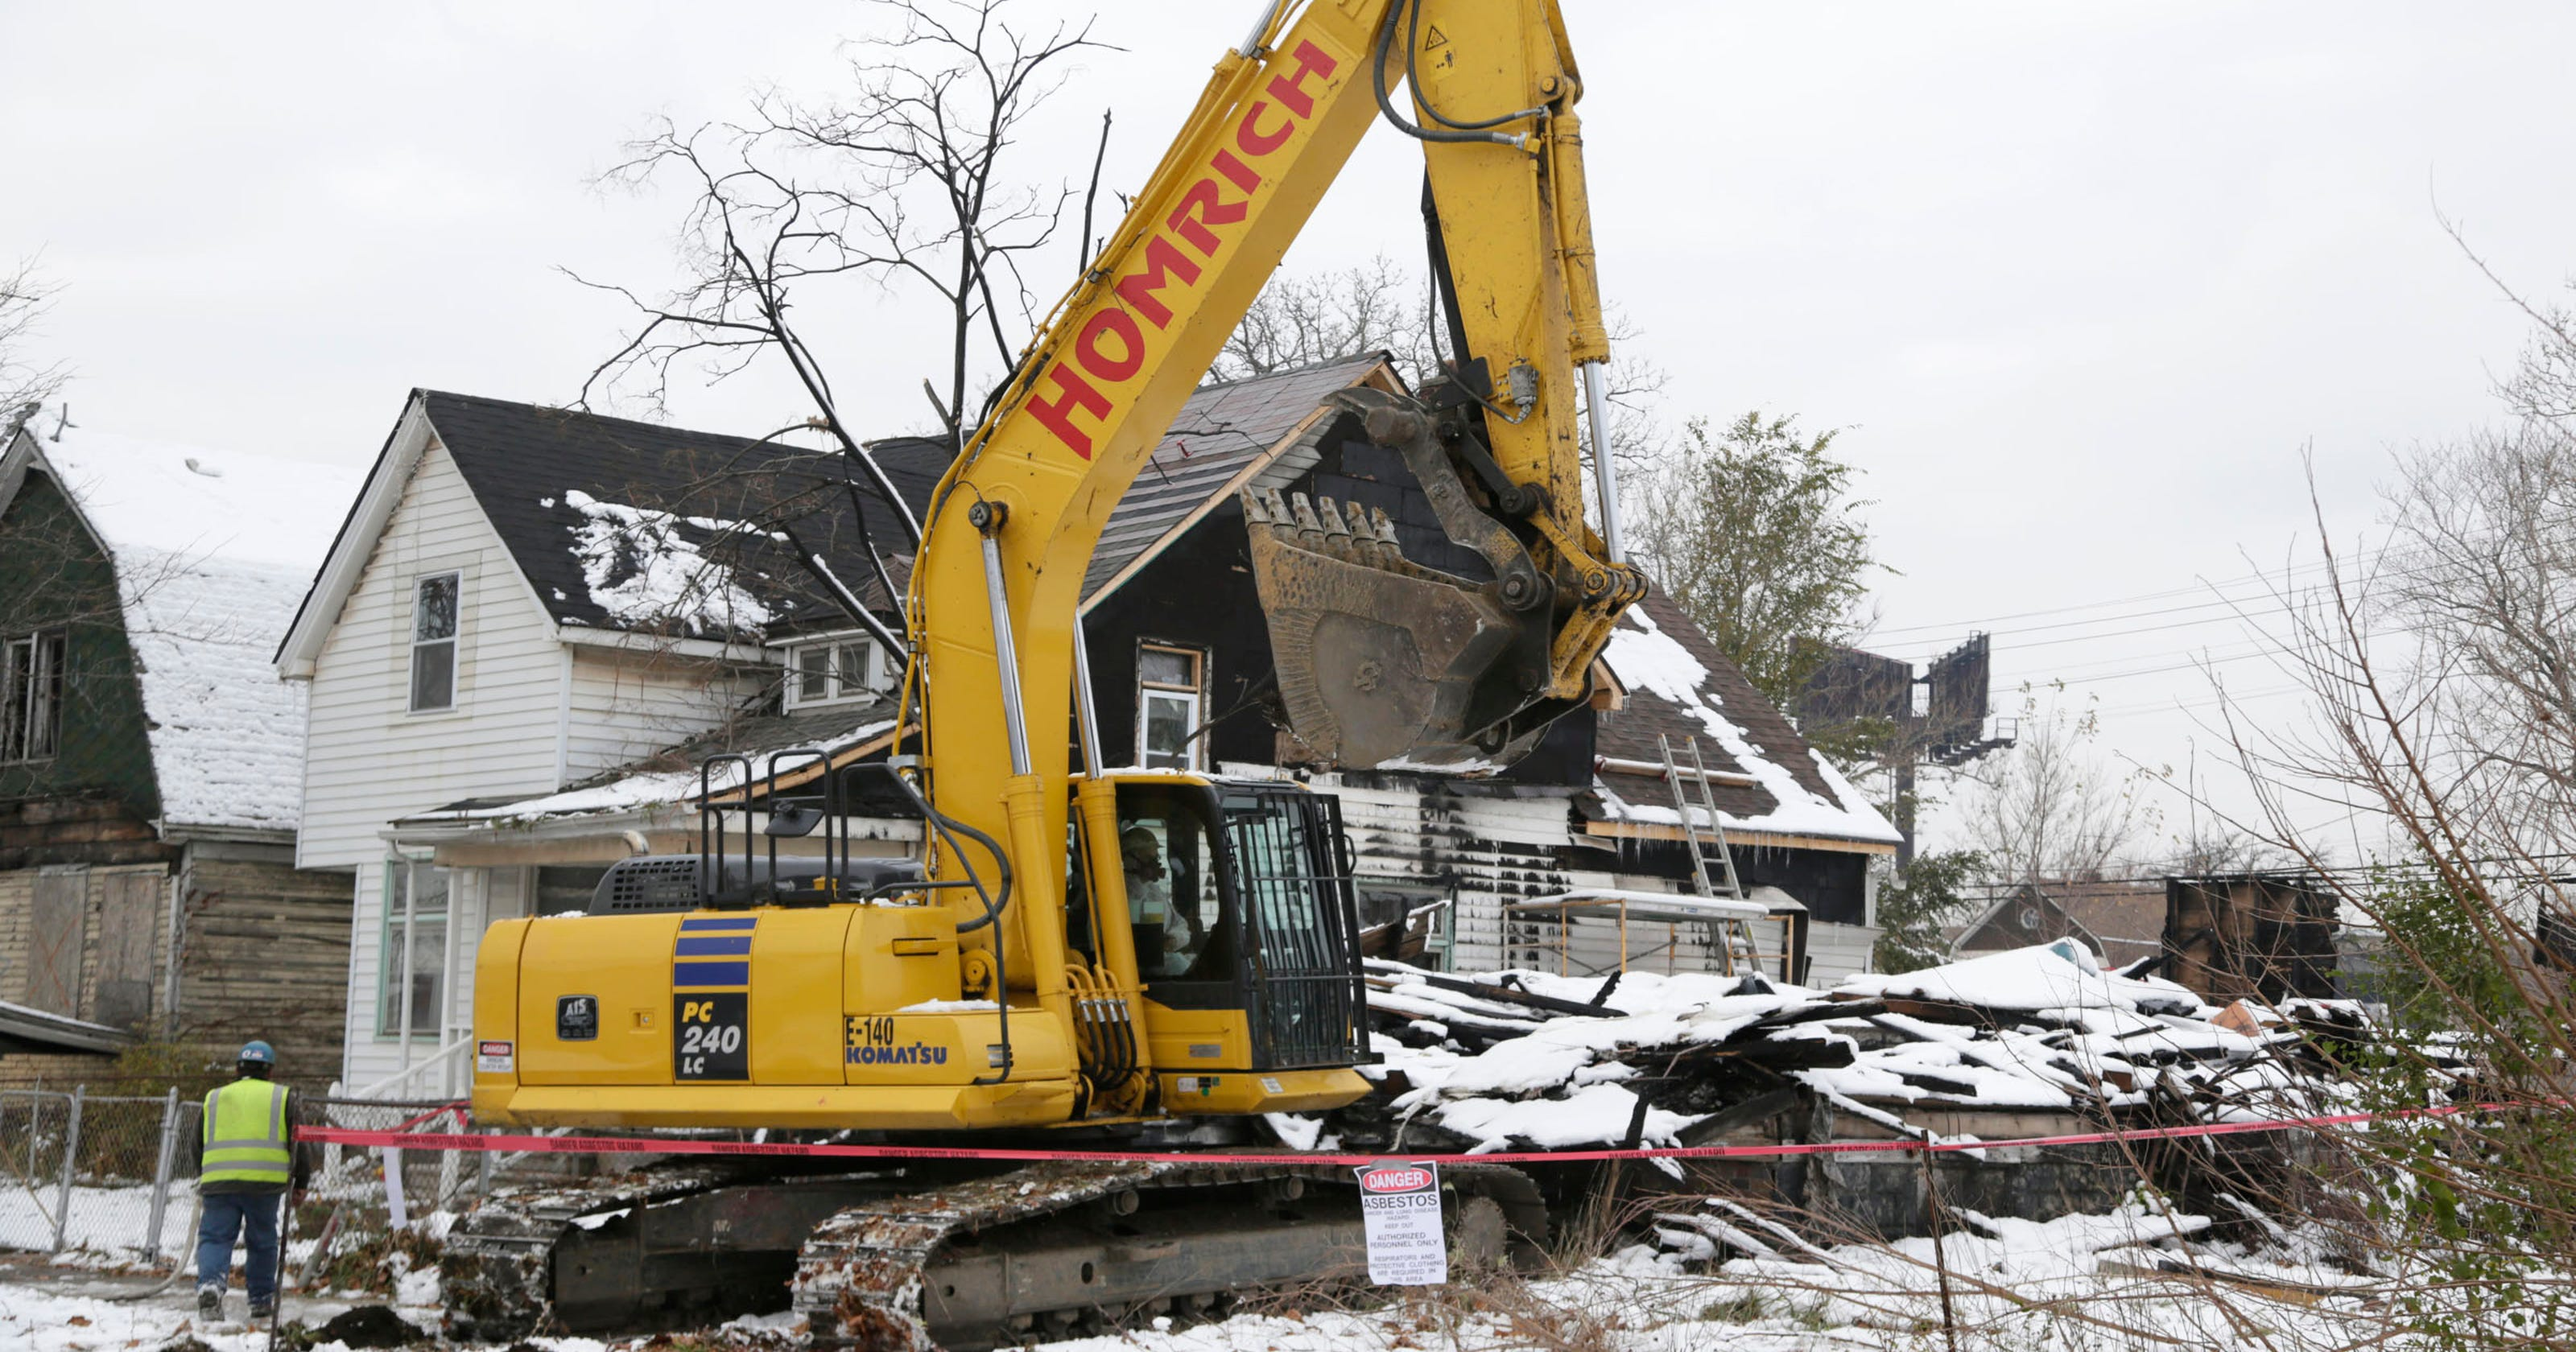 Detroit's home demolition program is poorly run, audit finds